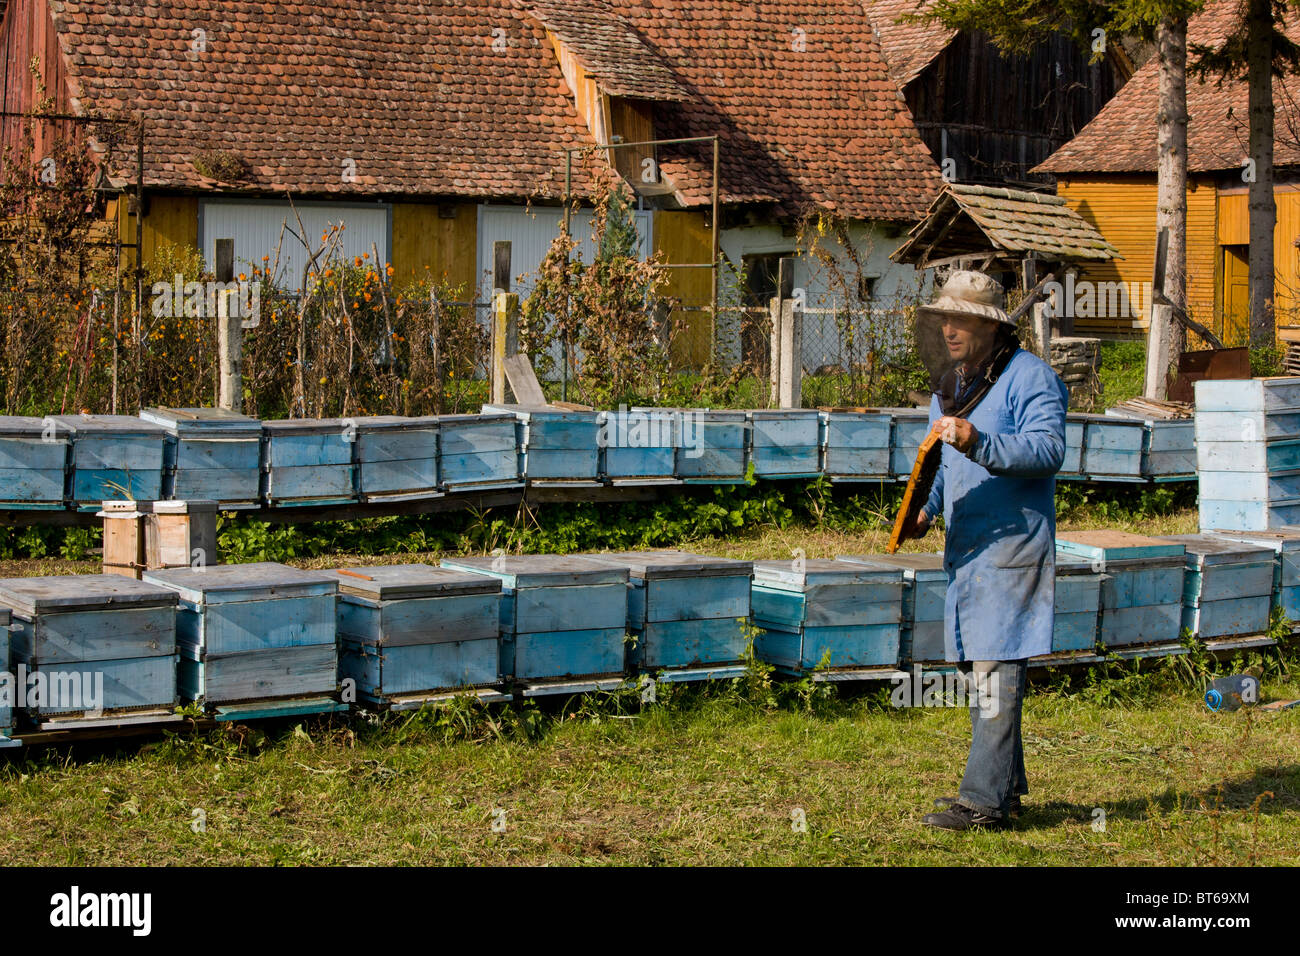 Bee-keeper among his hives in the old saxon village of Mesendorf, Transylvania, Romania - Stock Image